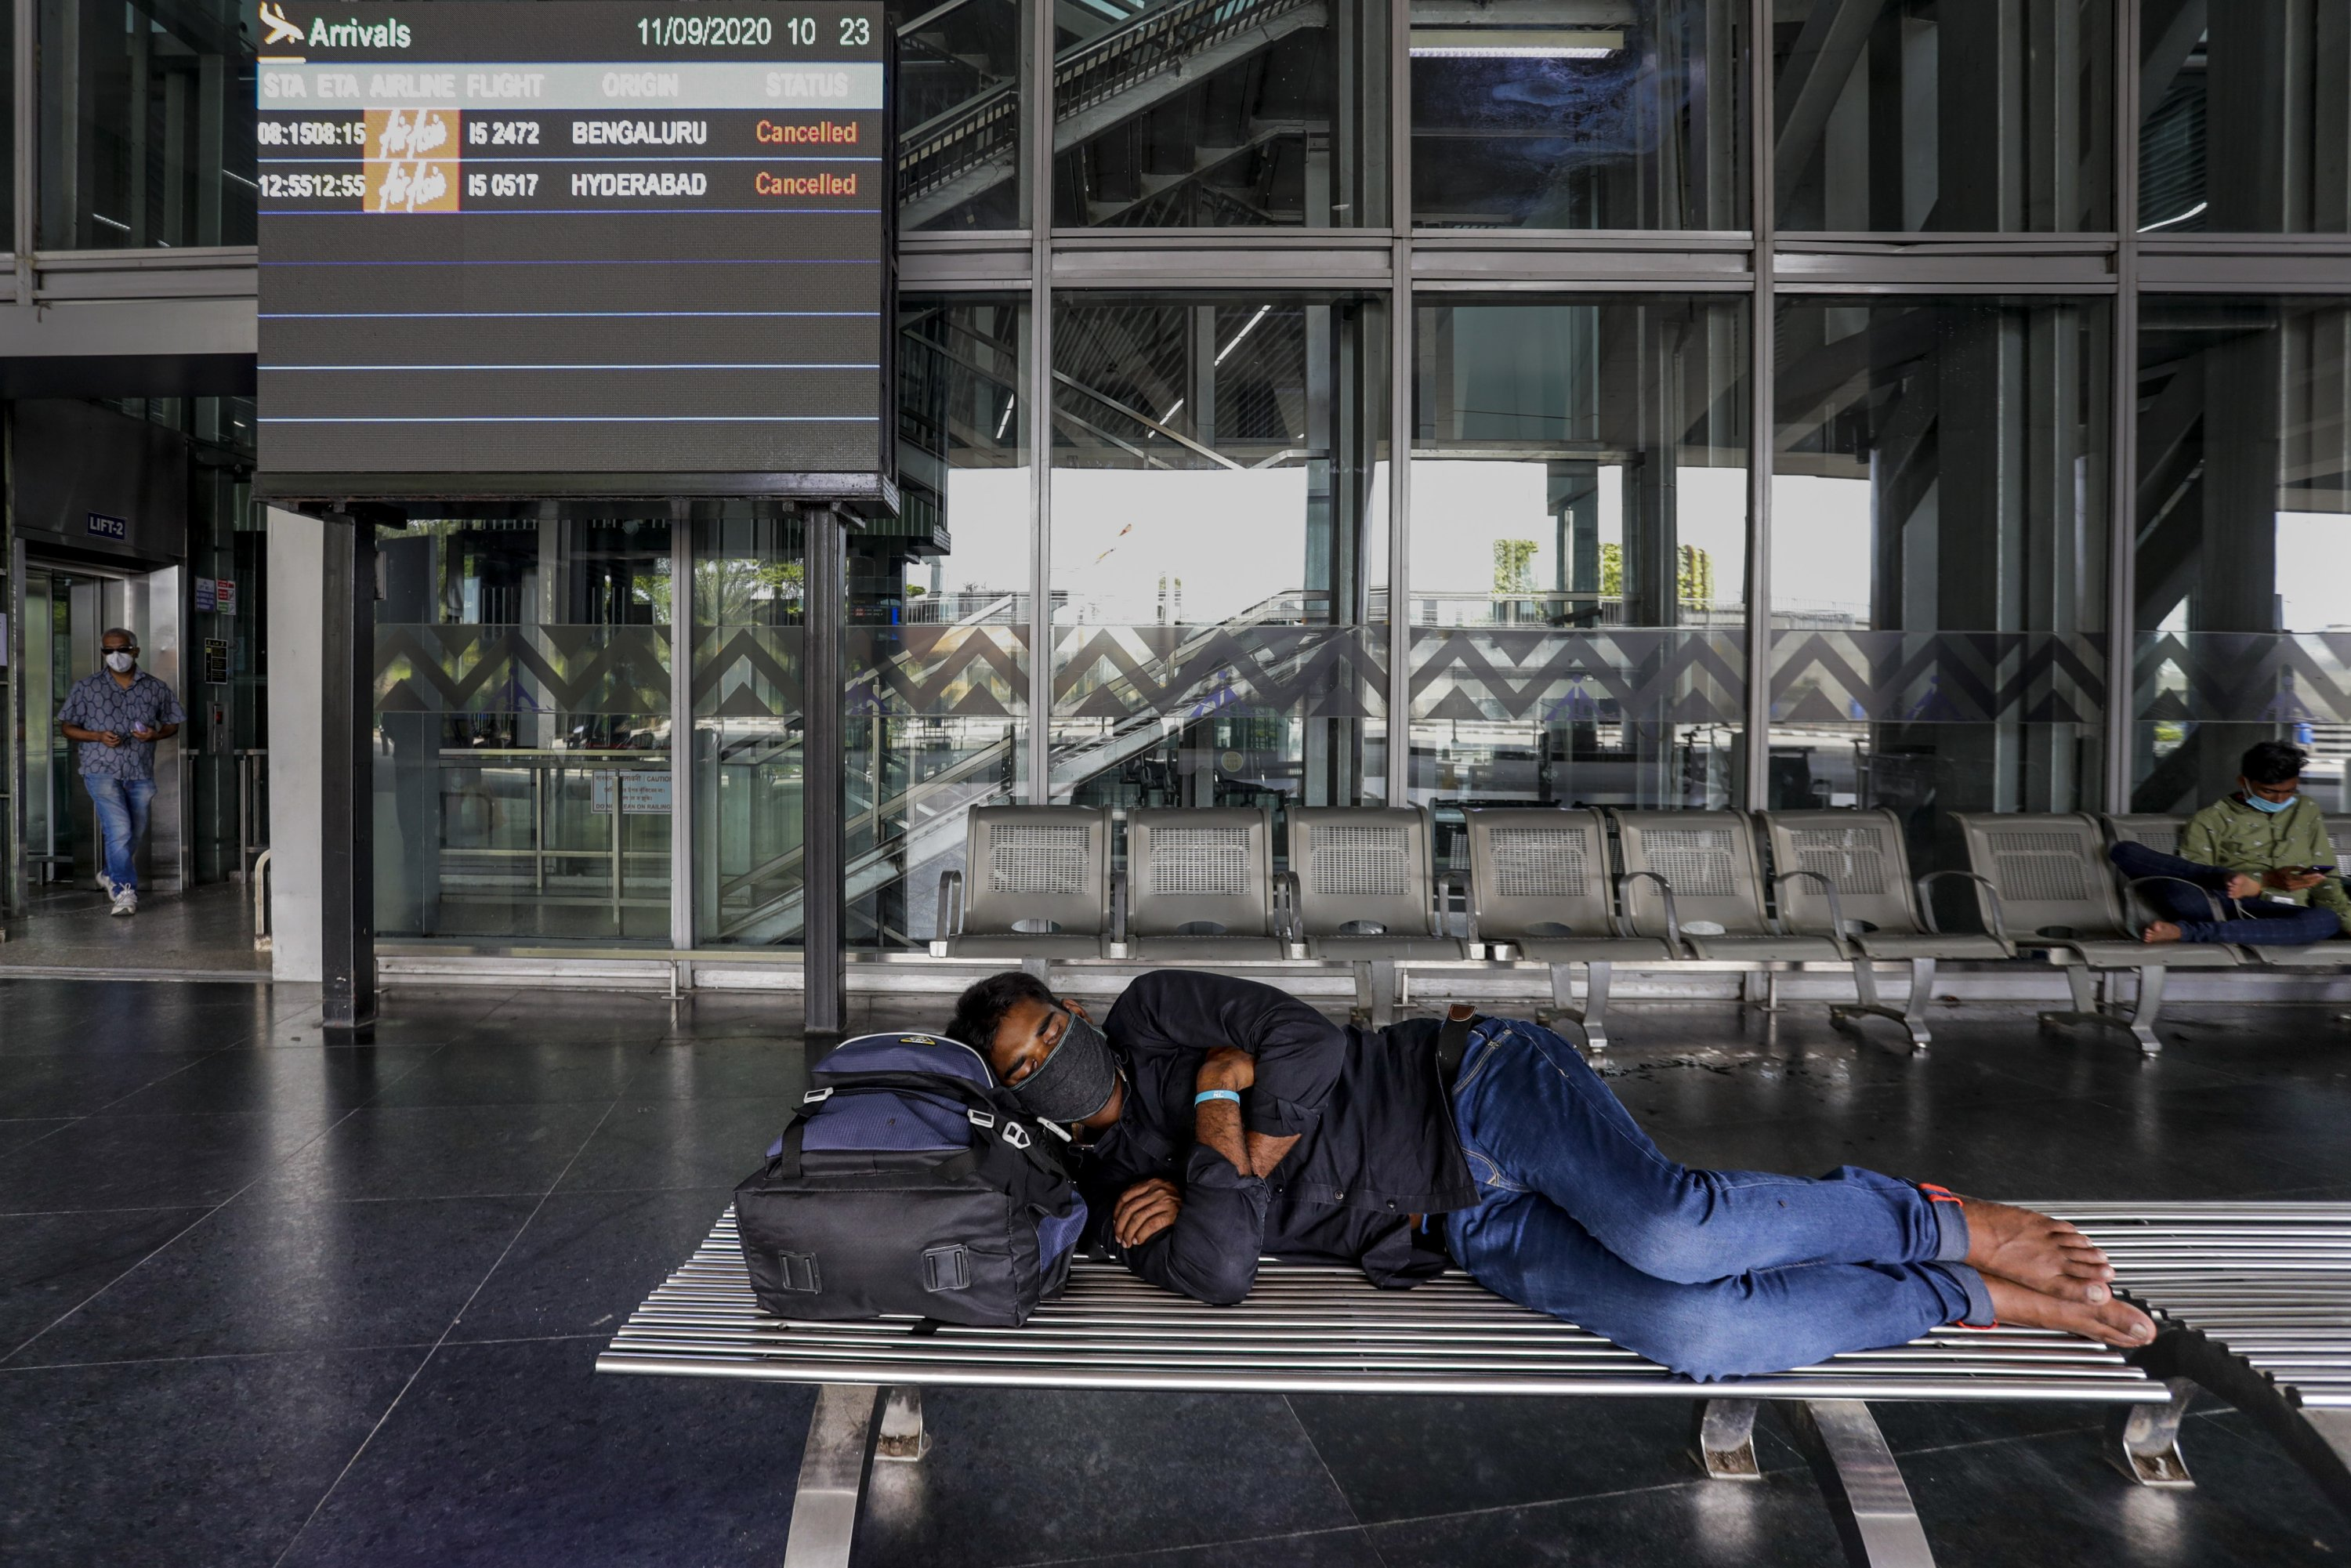 A stranded passenger sleeps outside an airport as an electronic board flashes cancellation of flights, during a complete lockdown in Kolkata, India, Sept. 11, 2020. (AP Photo)